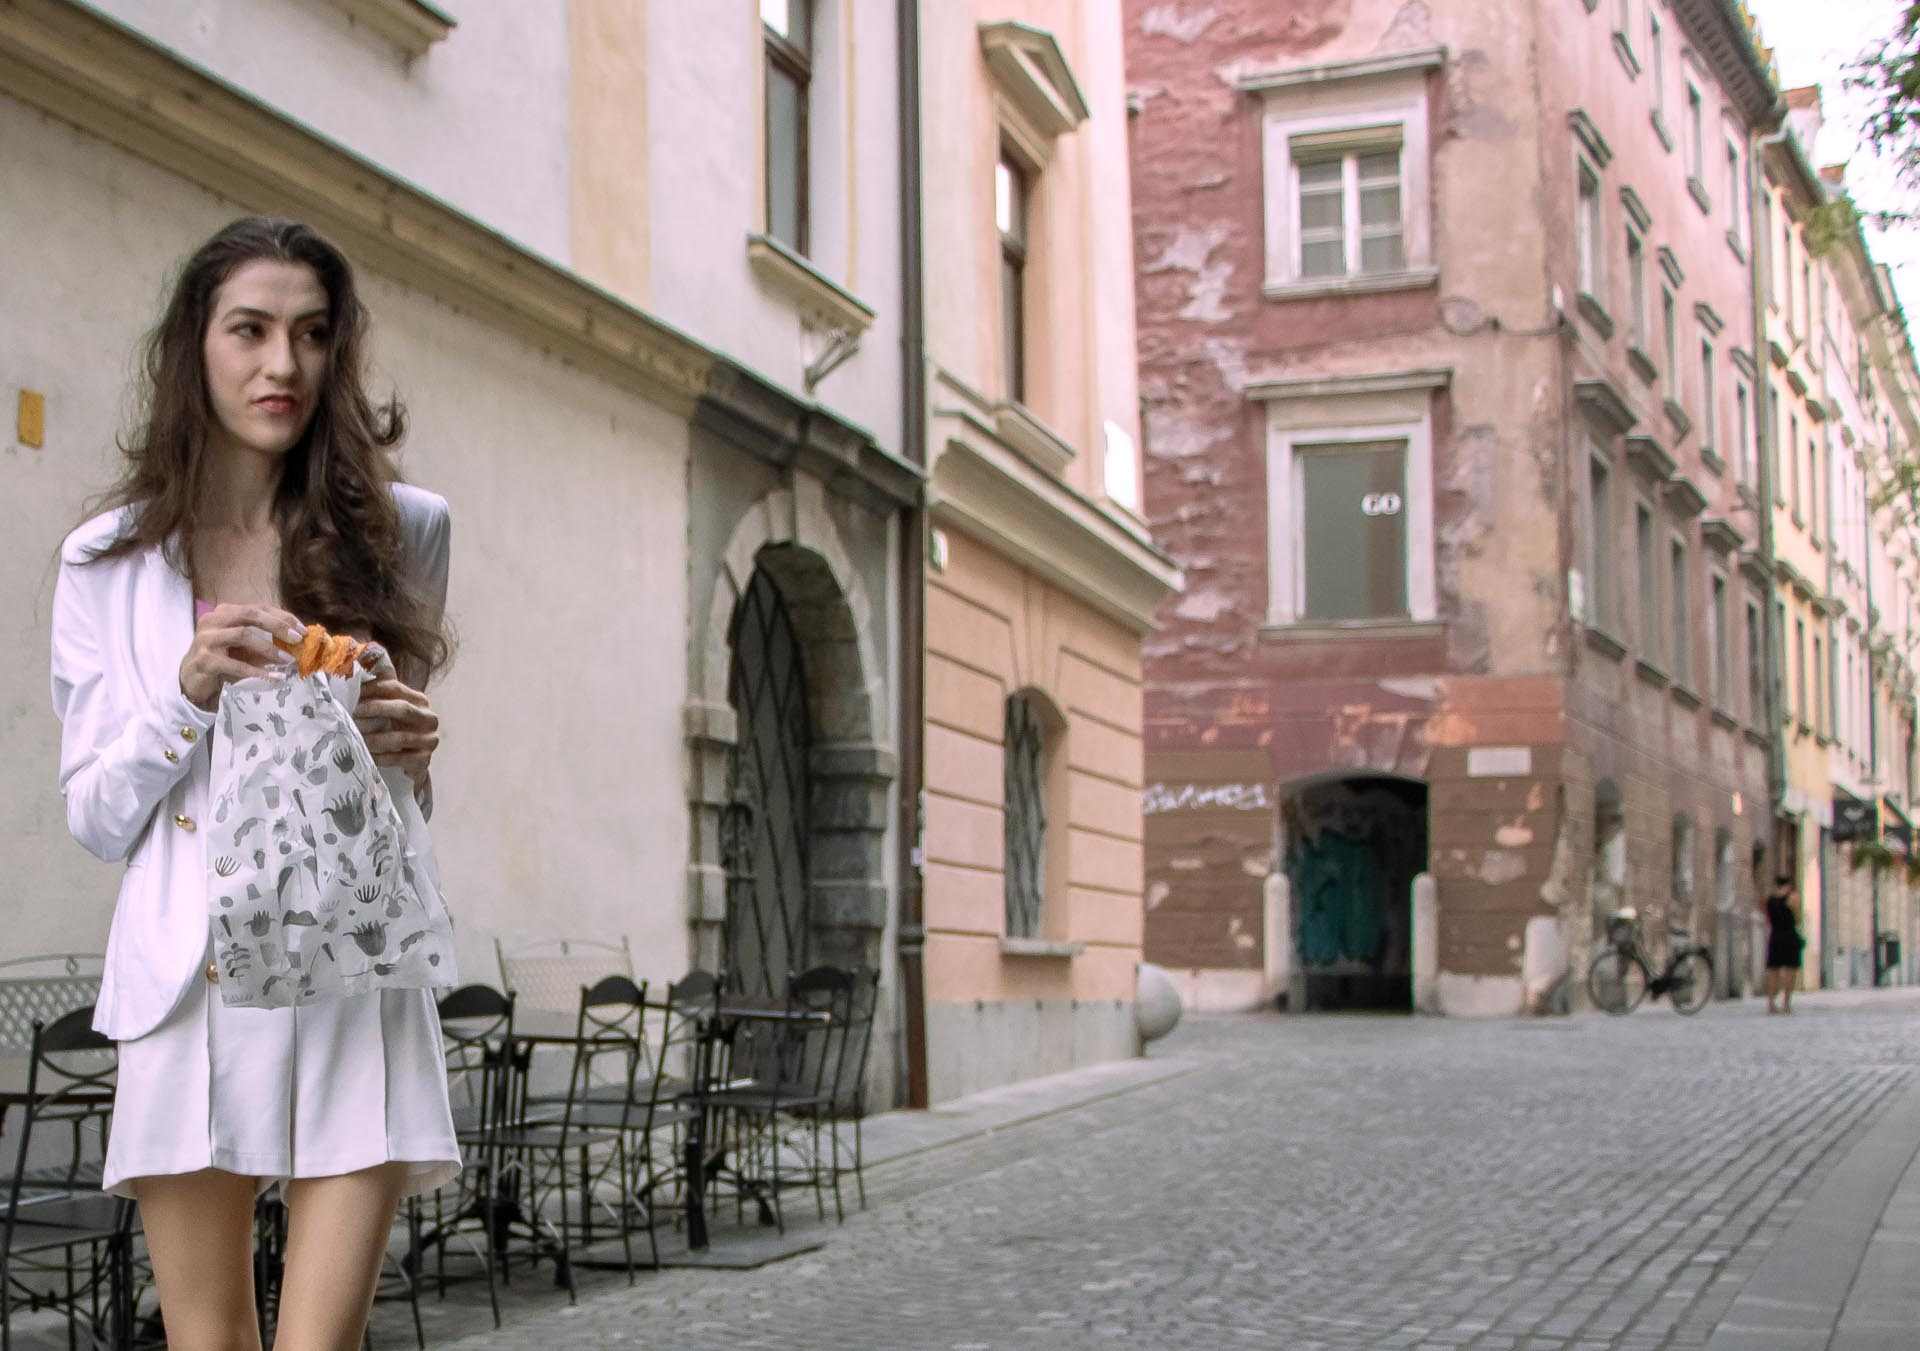 Beautiful Slovenian Fashion Blogger Veronika Lipar of Brunette from Wall dressed in all in white suit, white blazer, white tailored shorts, Stuart Weitzman high shine metallic nudist song sandals, shoulder bag while eating a croissant on the street in the morning after night out clubbing